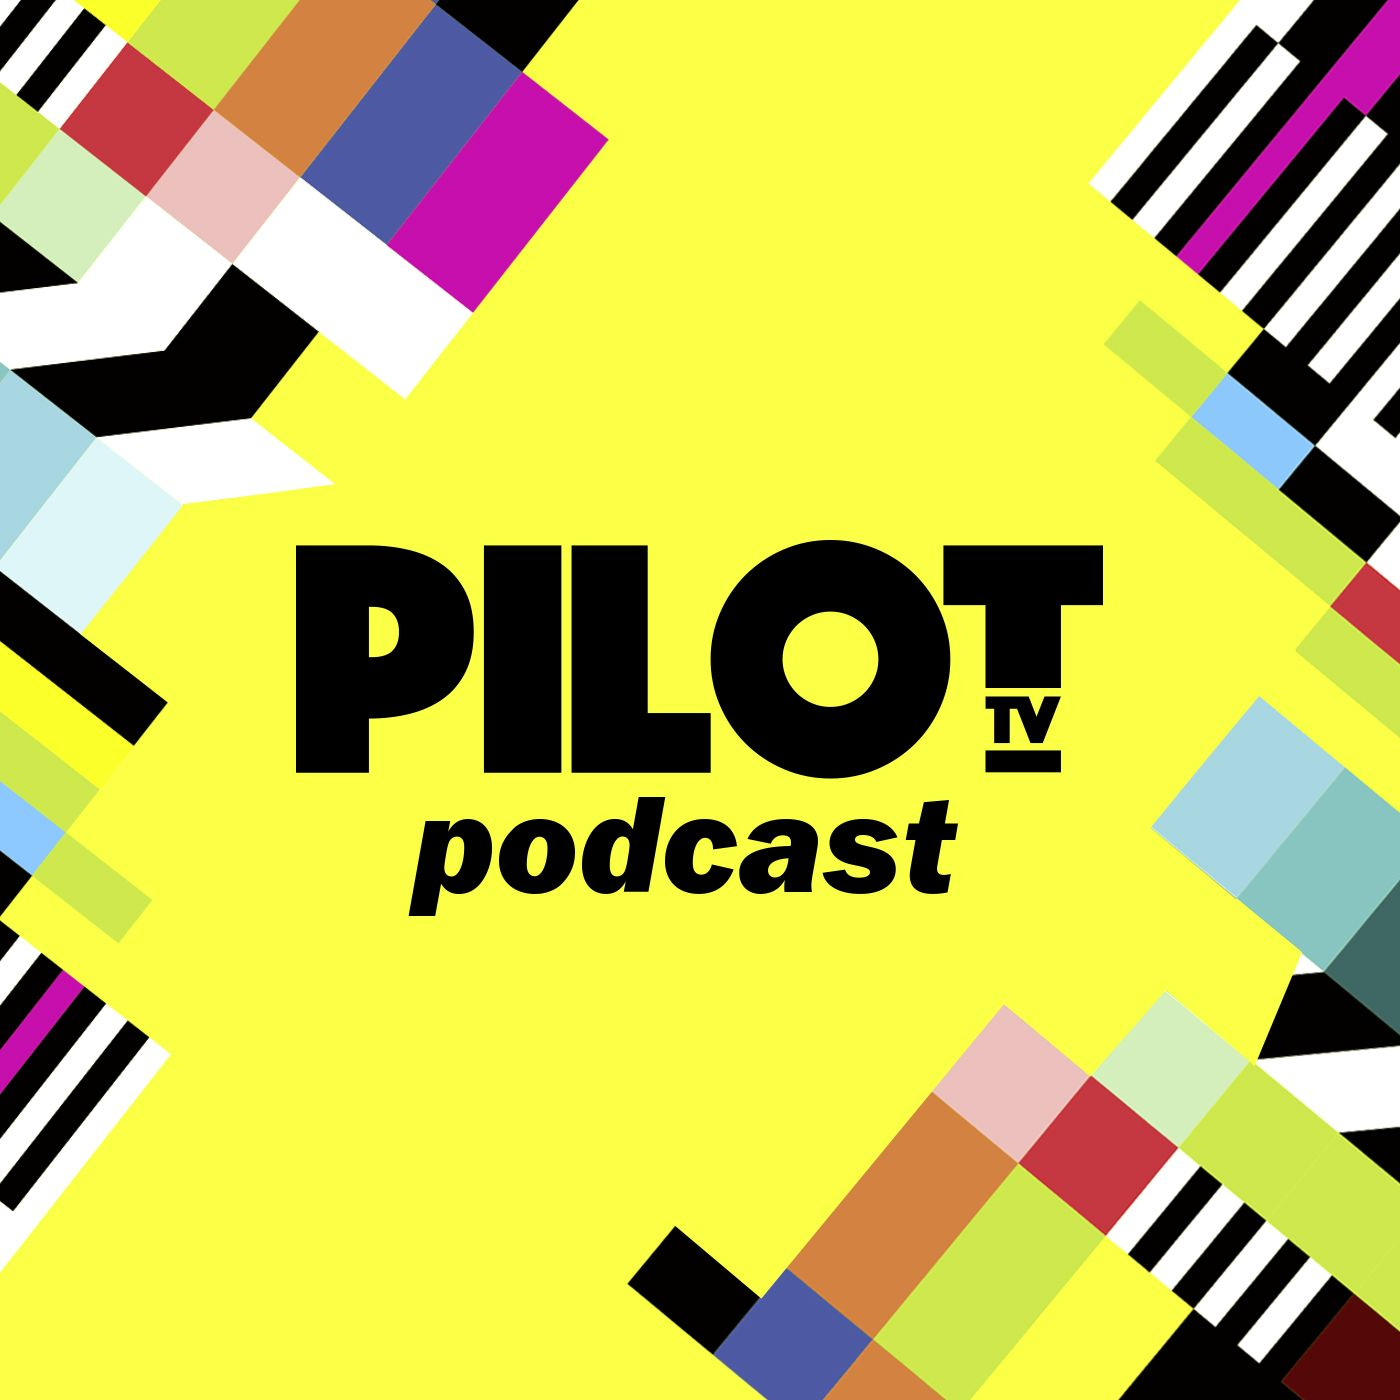 Pilot TV podcast Podcasts, Pilot, New shows